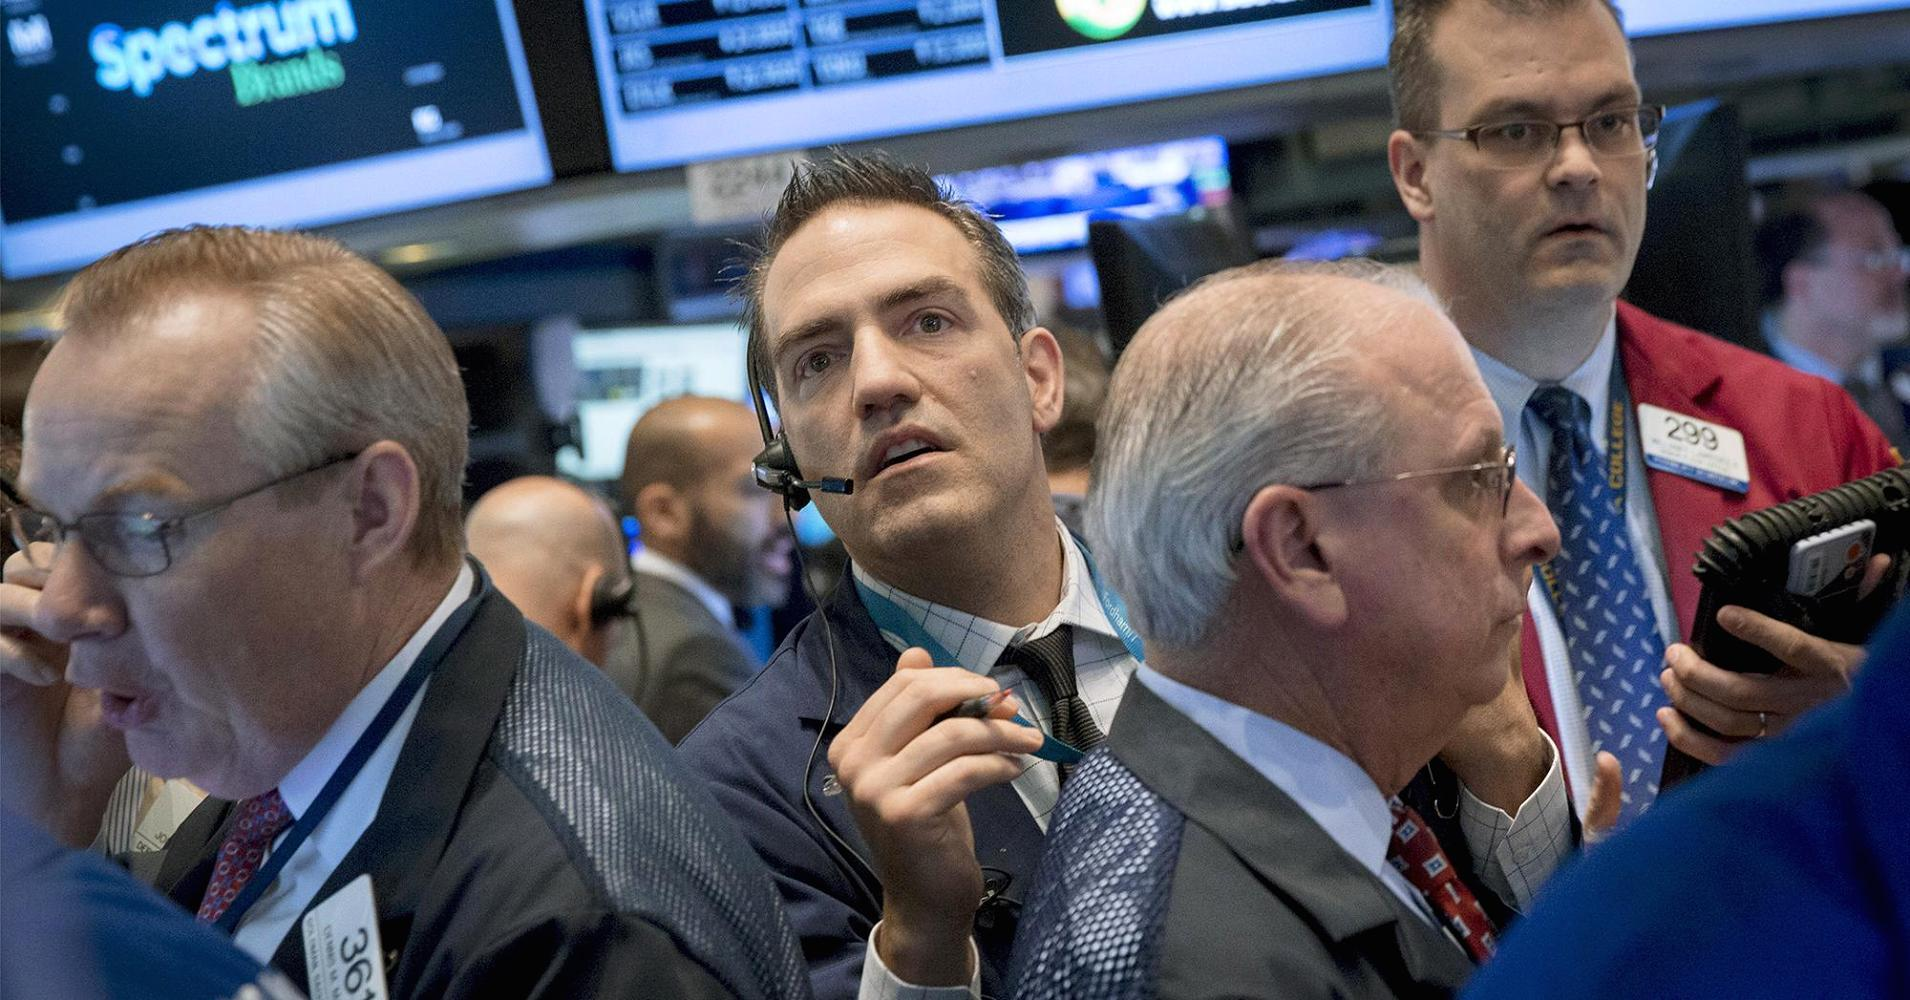 The IPO business: an anemic Q1, a cloudy Q2